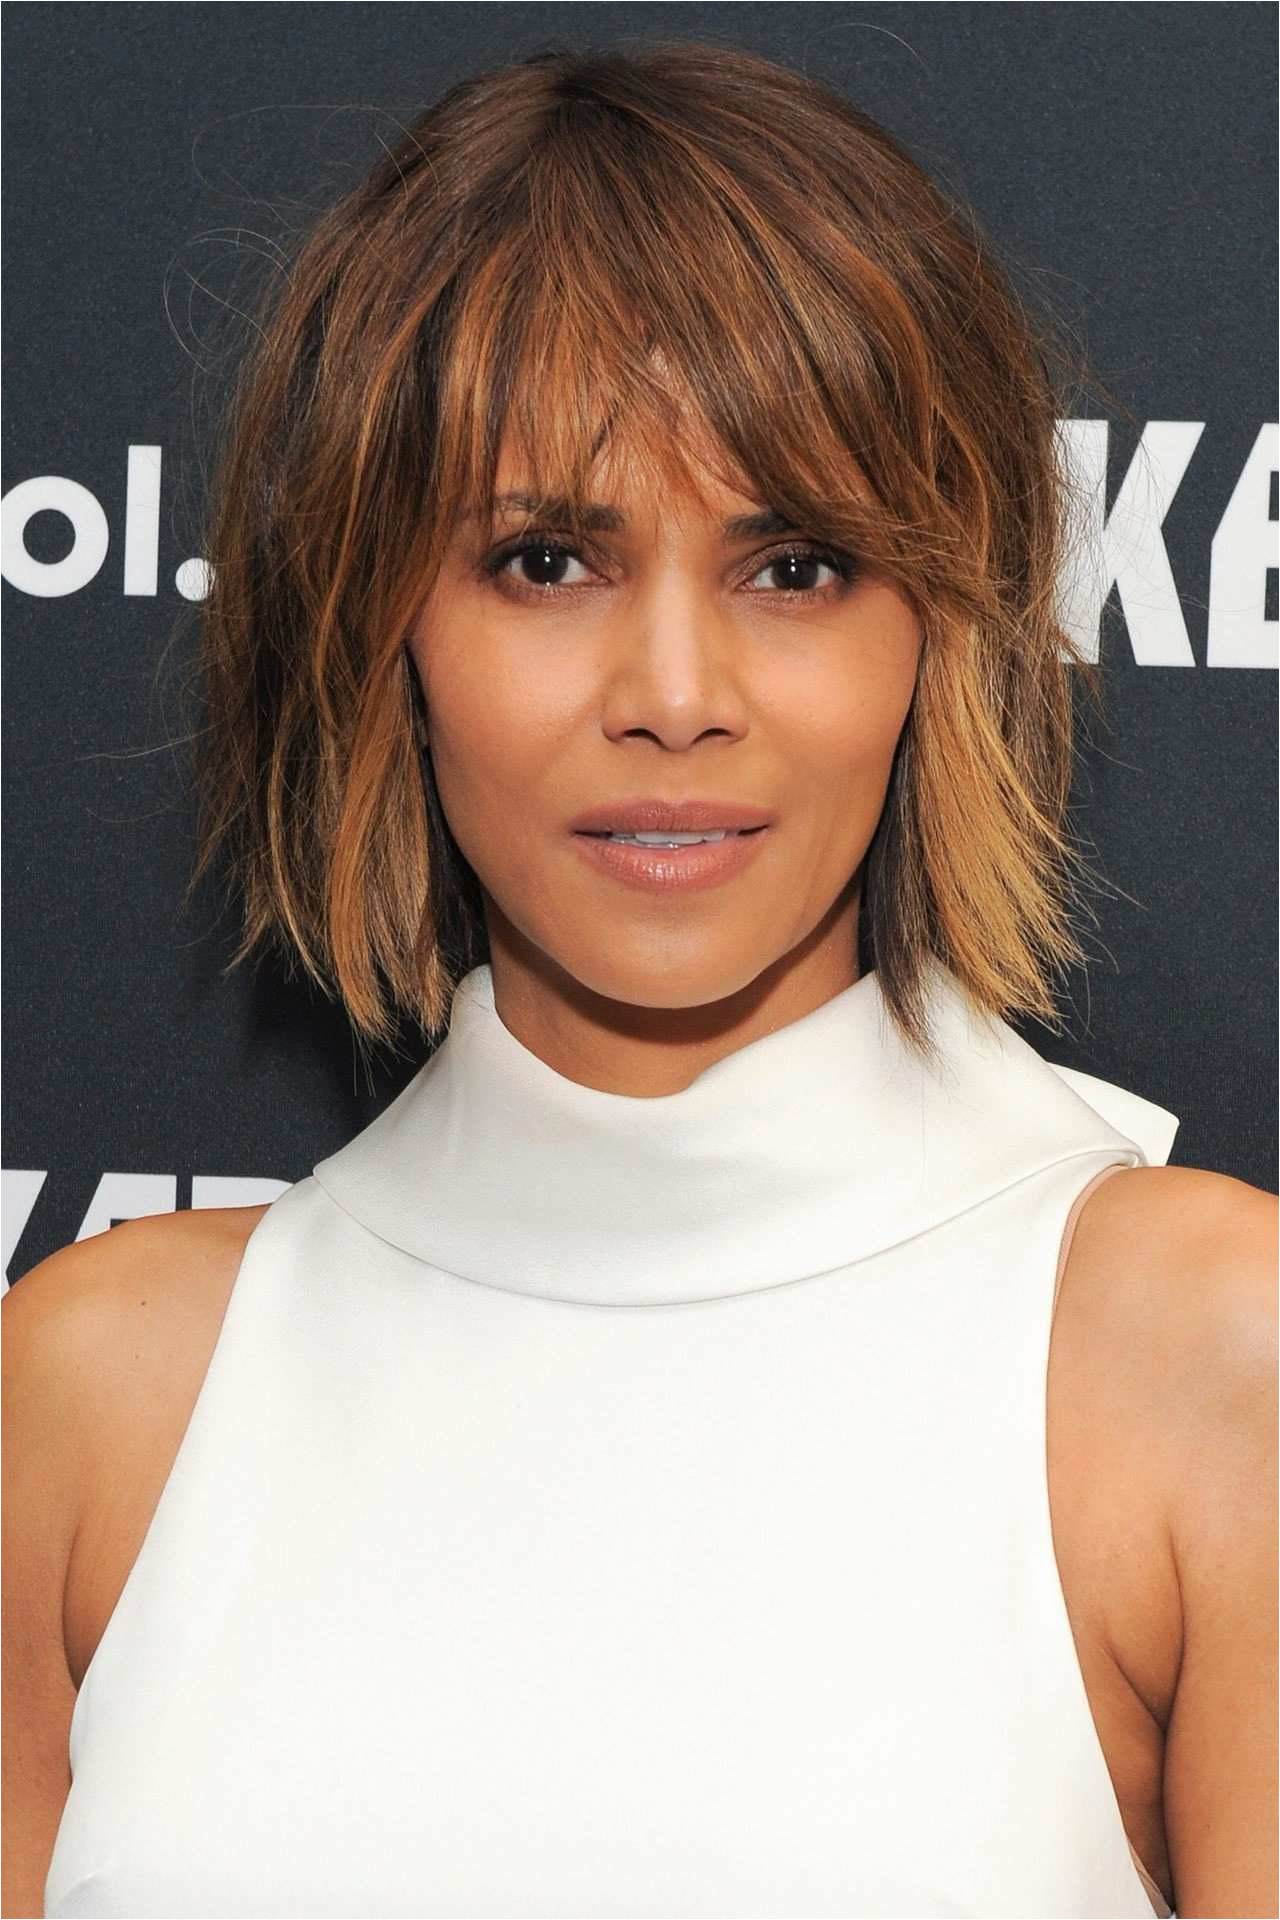 Cool Hairstyles Girls Best The Bob Hairstyles Pretty Bob Hairstyles New Bob Hairstyles New Goth